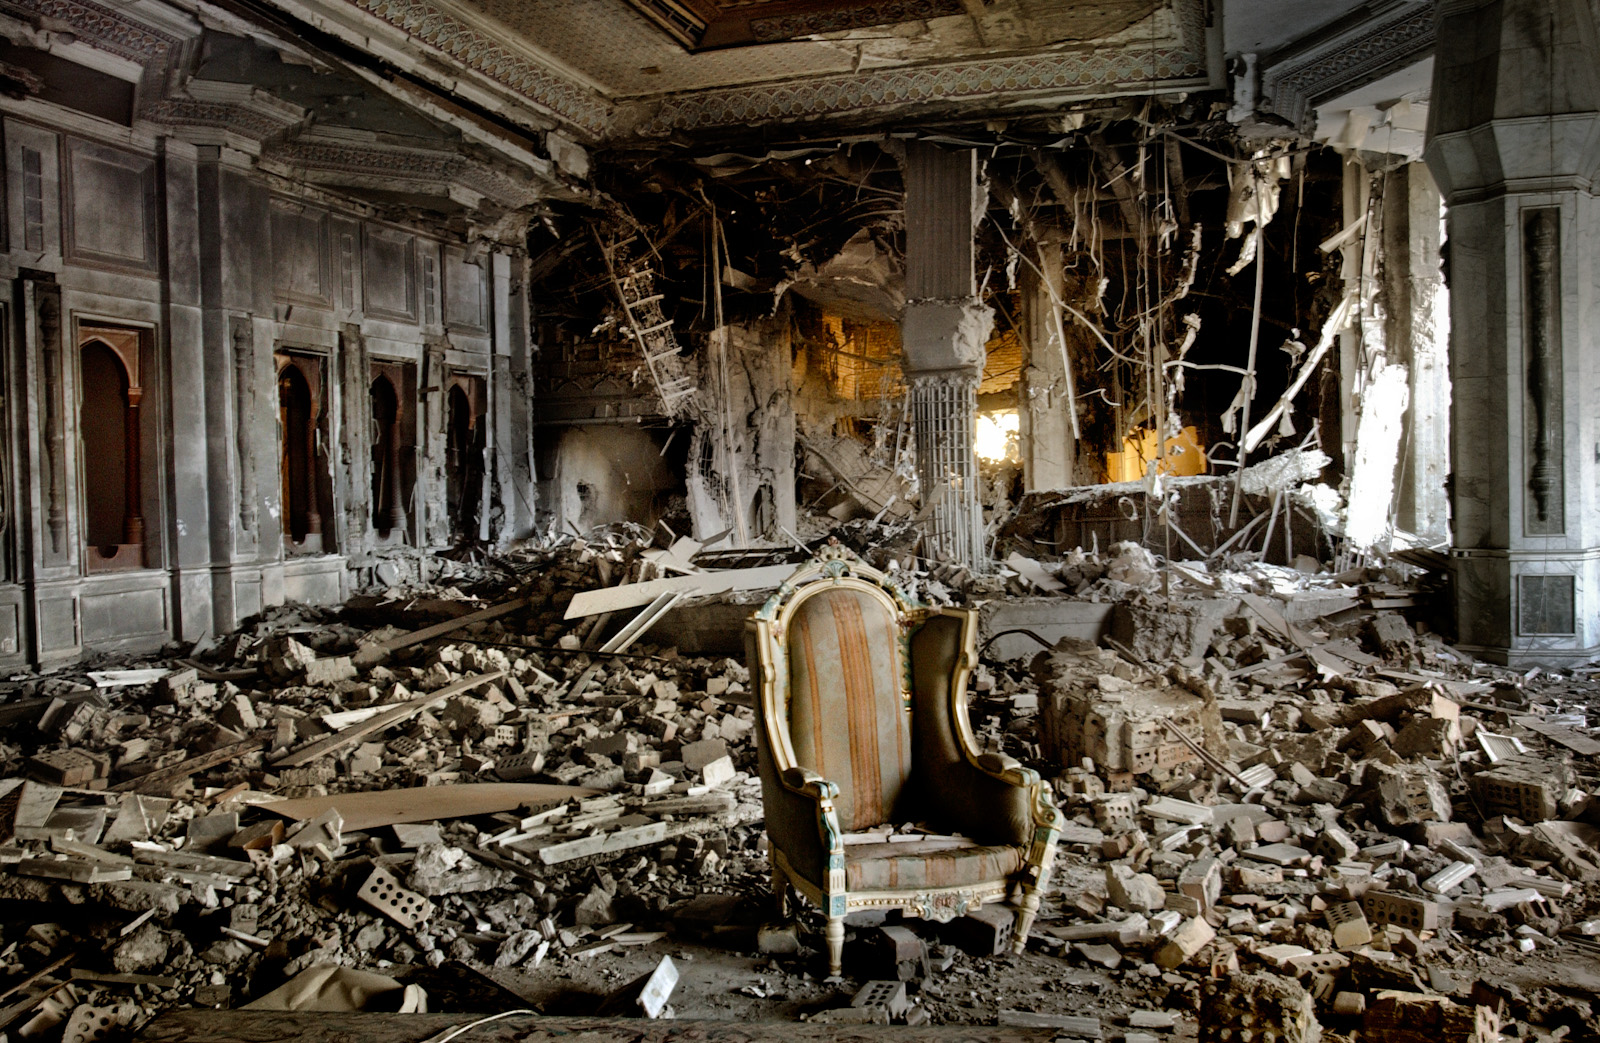 A gilded chair sits in the middle of Saddam Hussein's Palace, destroyed earlier by intensive U.S. aerial bombardment, Baghdad, Iraq, April 12, 2003.